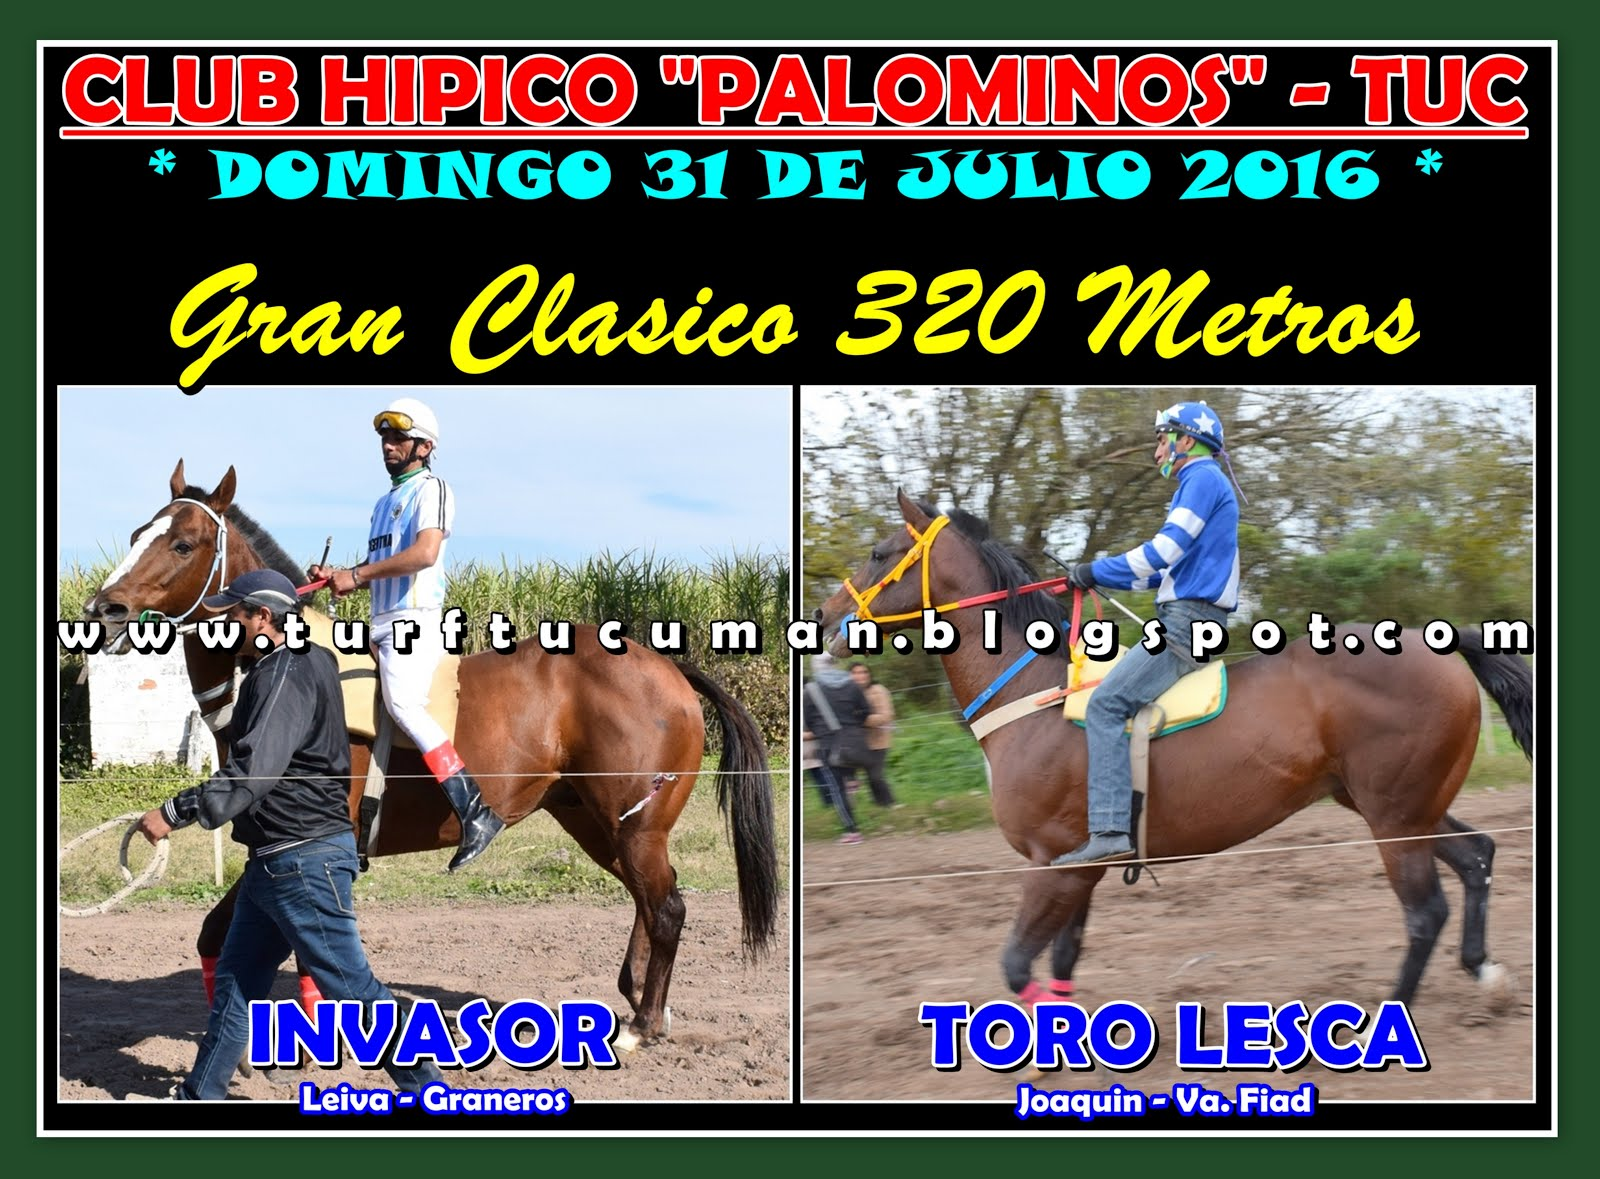 INVASOR VS TORO LESCA